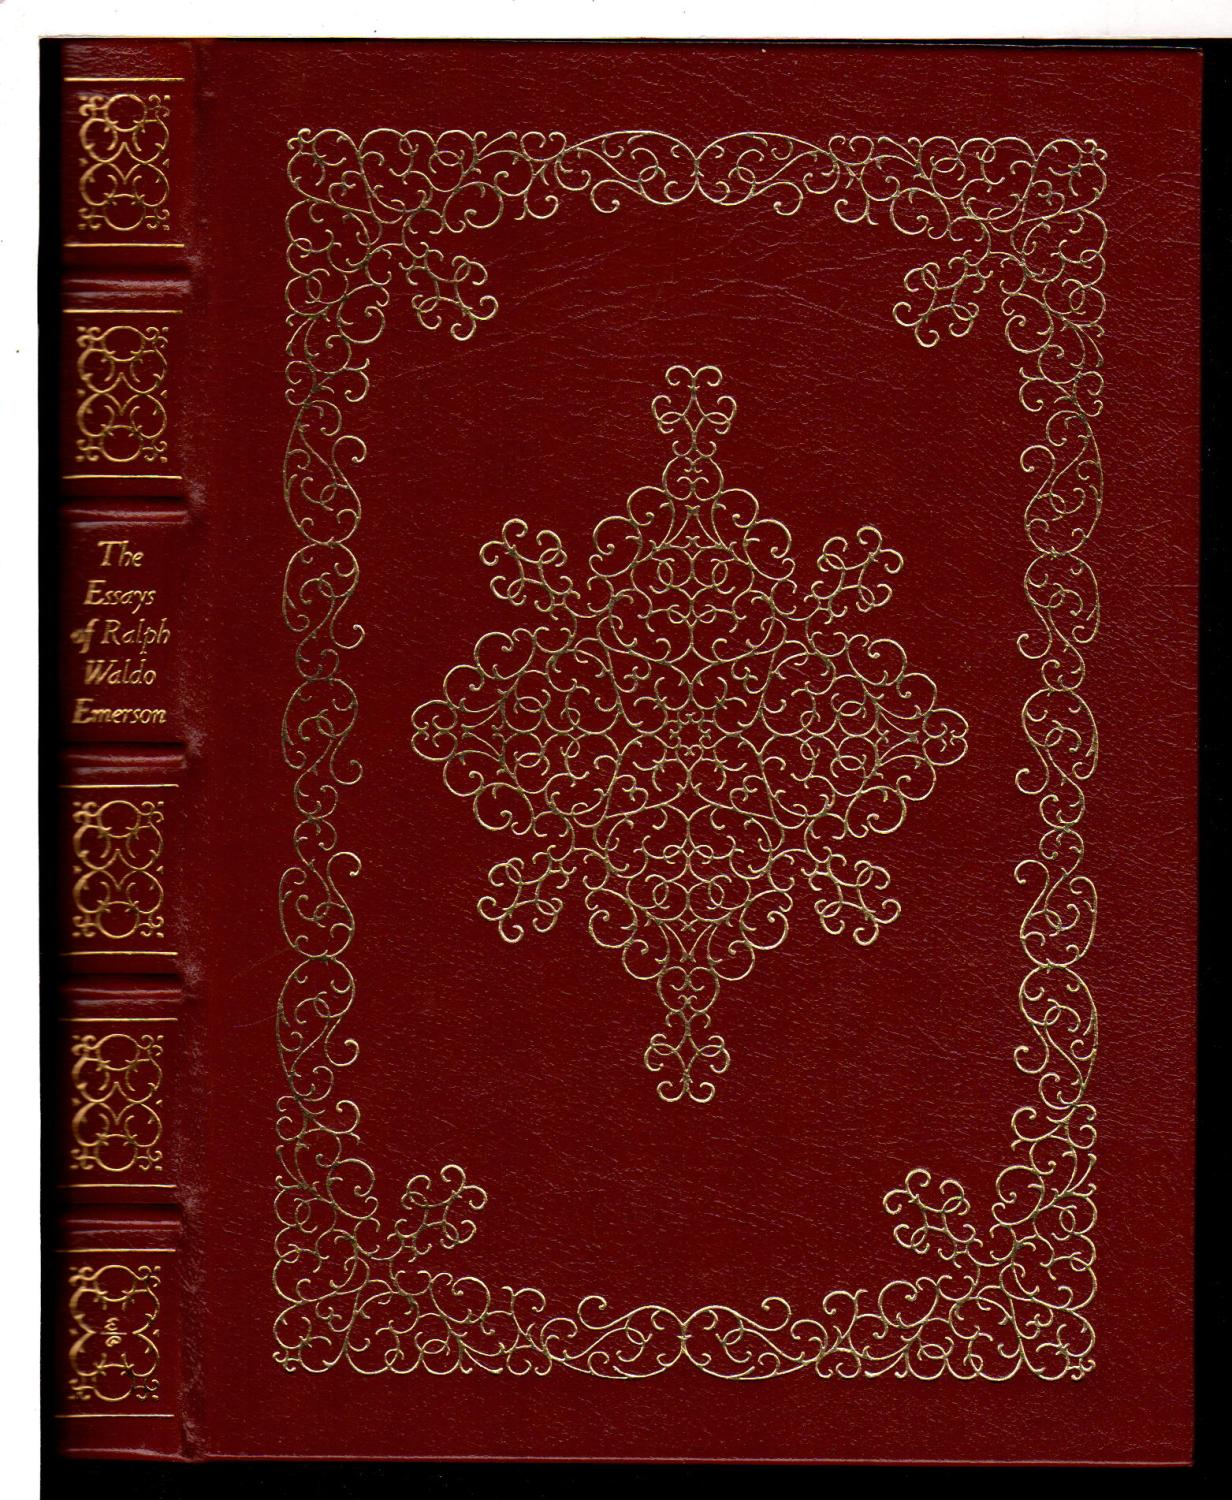 THE ESSAYS OF RALPH WALDO EMERSON: The First Series, MDCCCXLI, and The Second Series, MDCCCXLIV, in...